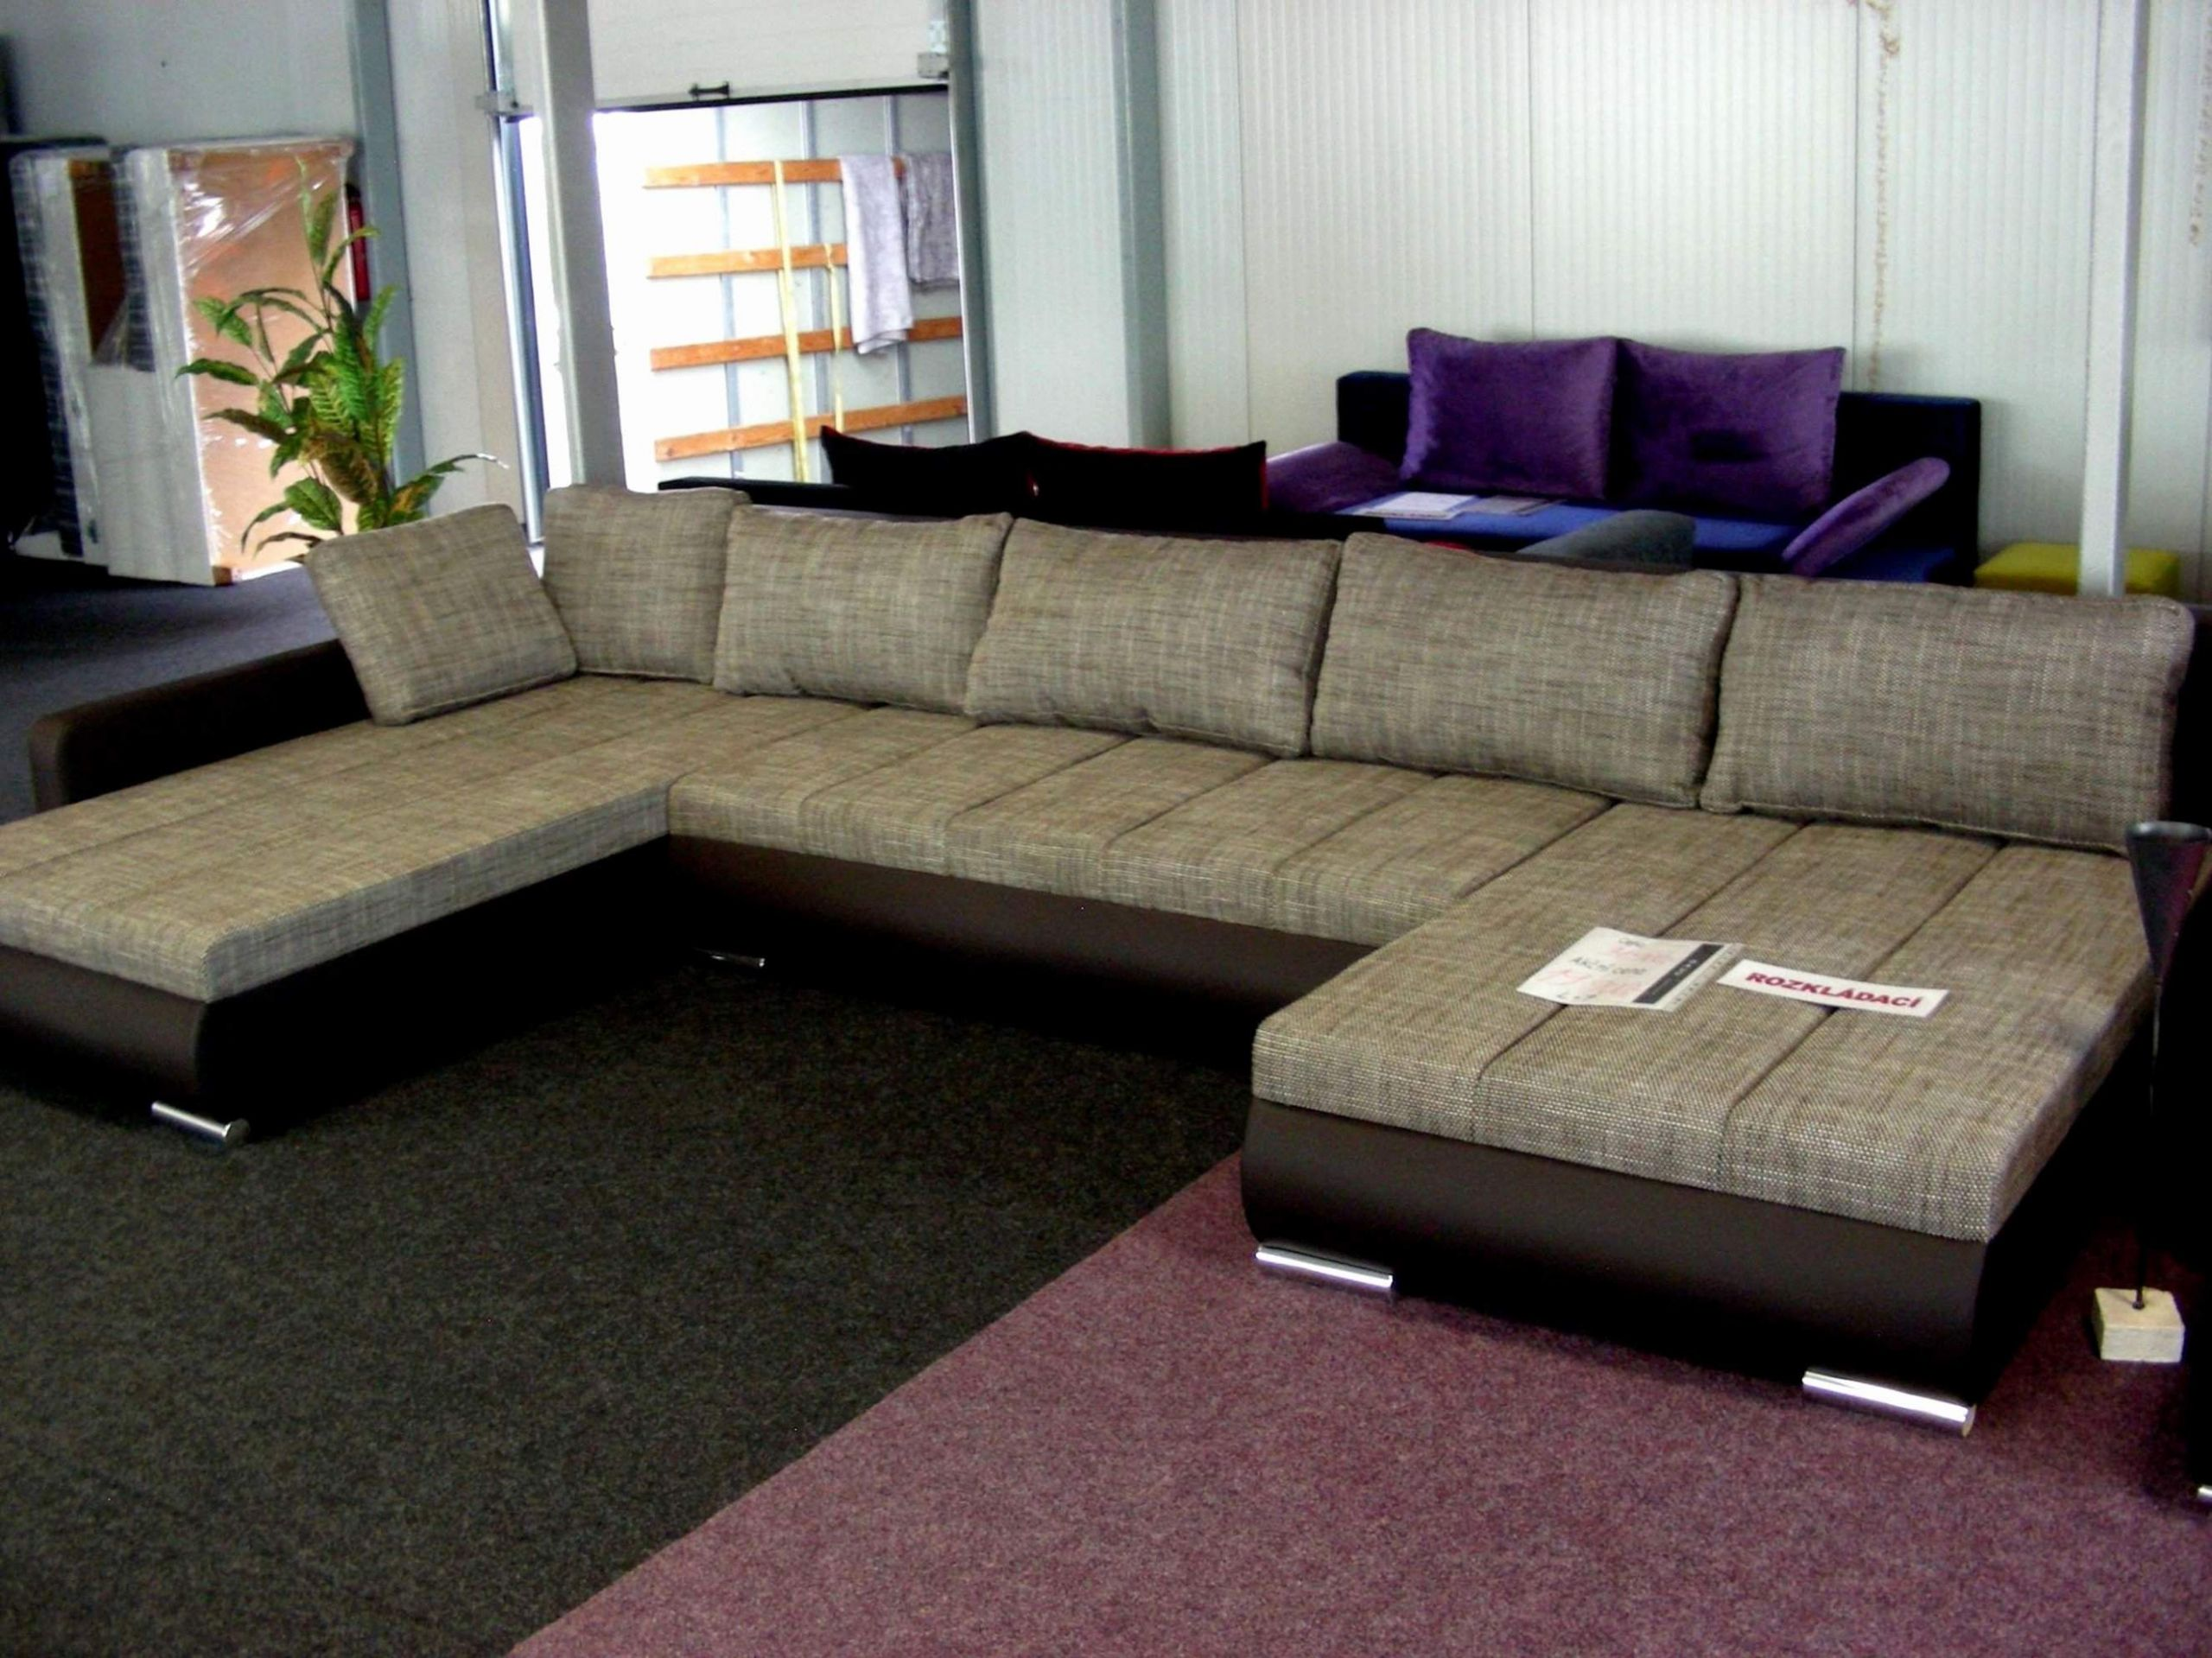 living room sectional ideas new wohnzimmer komplett neu gestalten ideen kreativitat sofa of living room sectional ideas